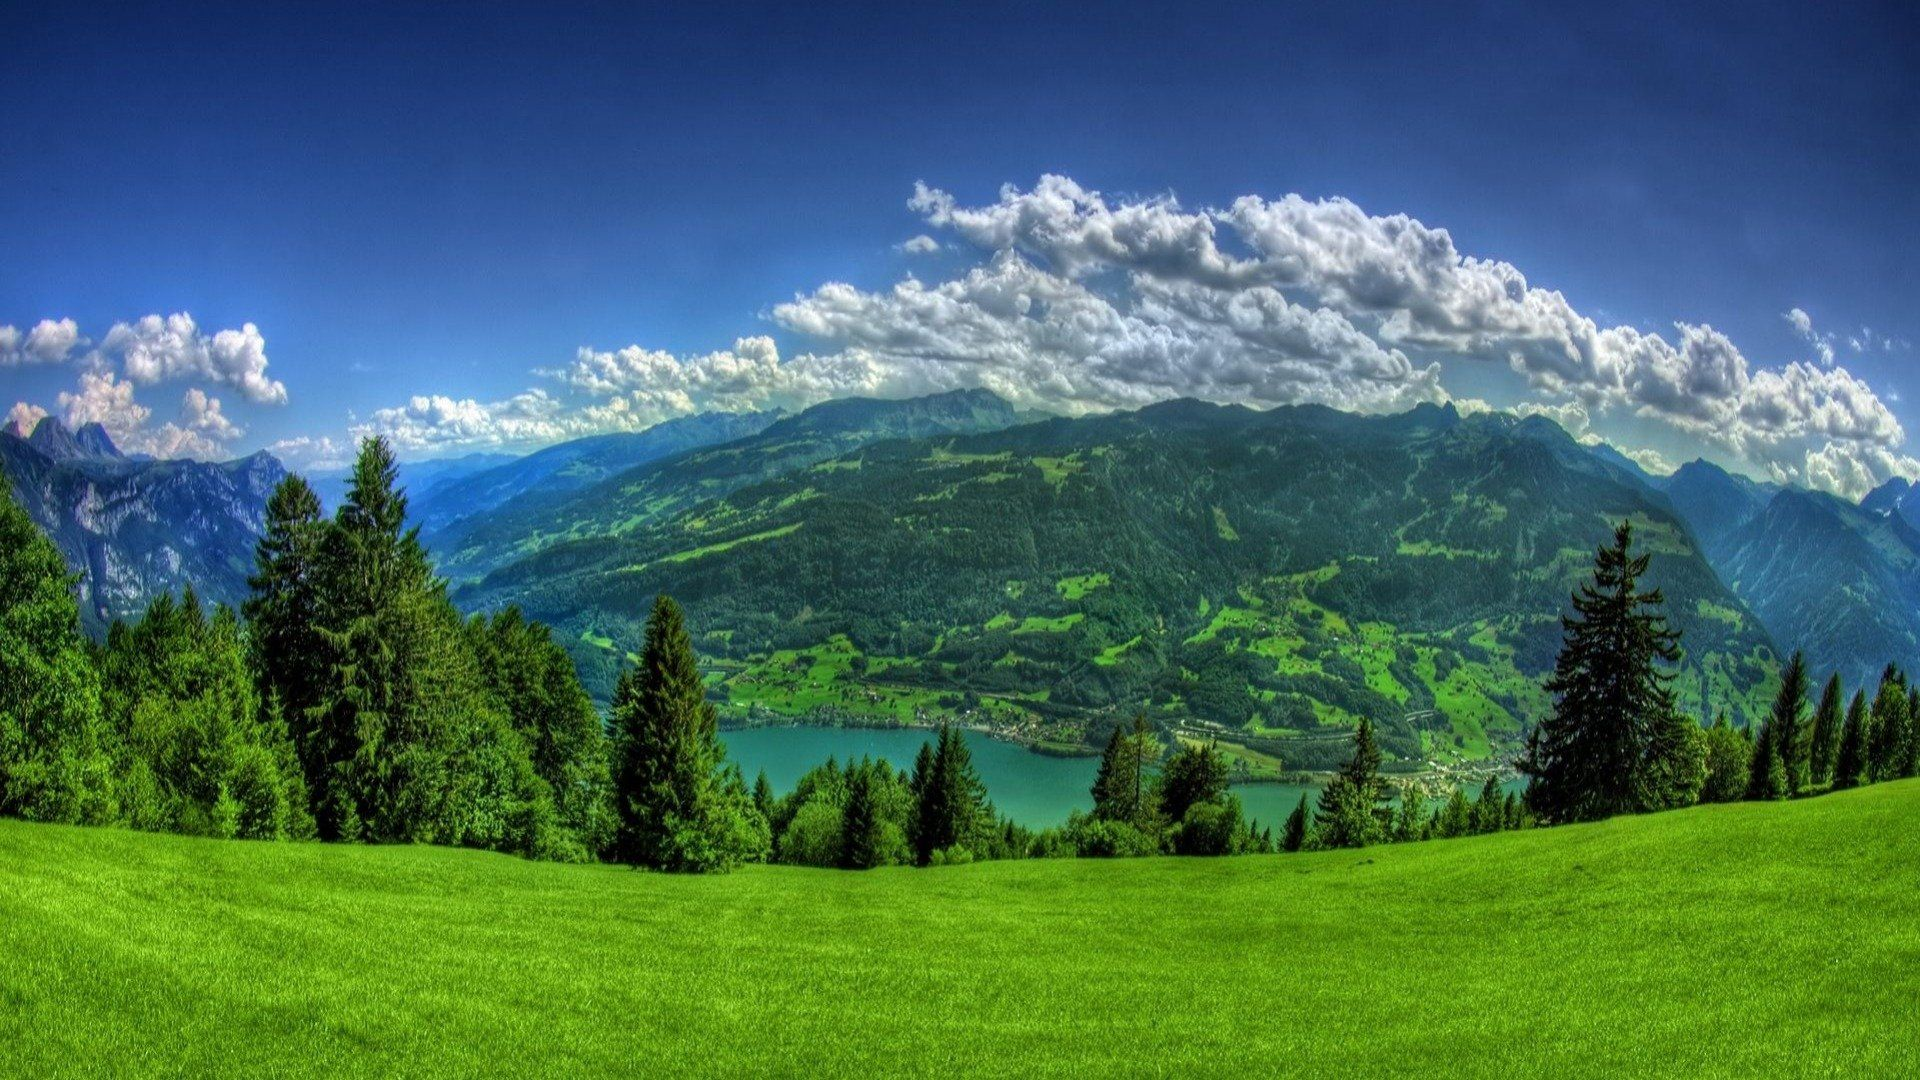 Dede On Twitter Hd Nature Wallpapers Nature Wallpaper Beautiful Nature Wallpaper